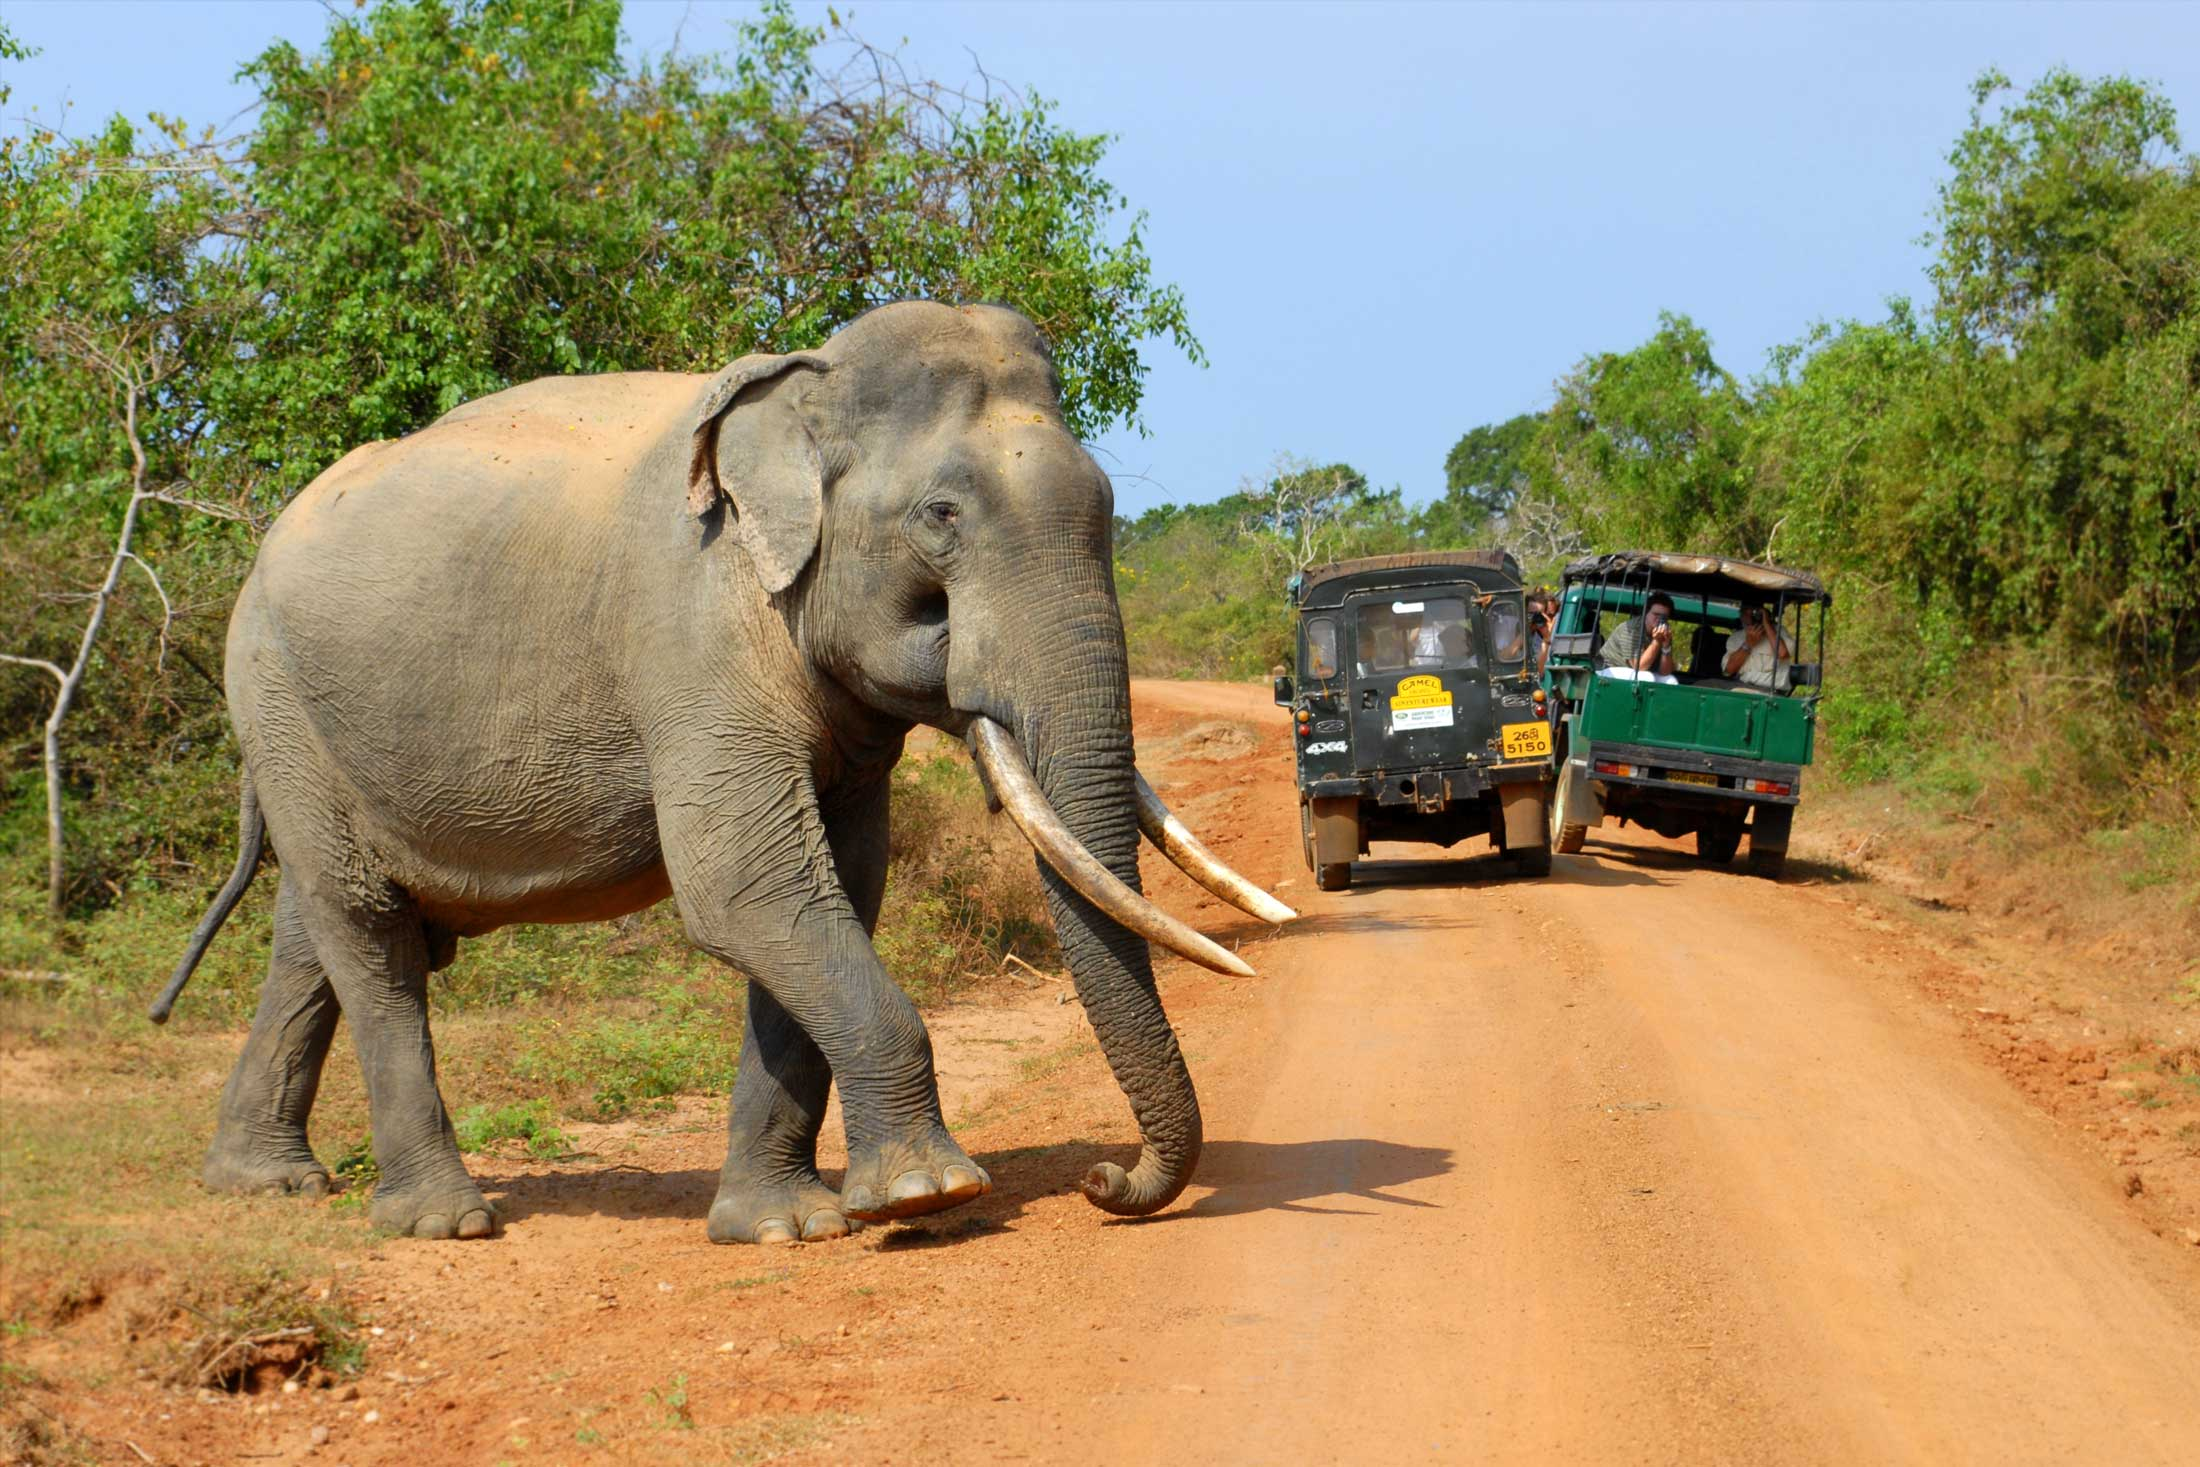 Elephant-Yala-National-Park-Sri-Lanka